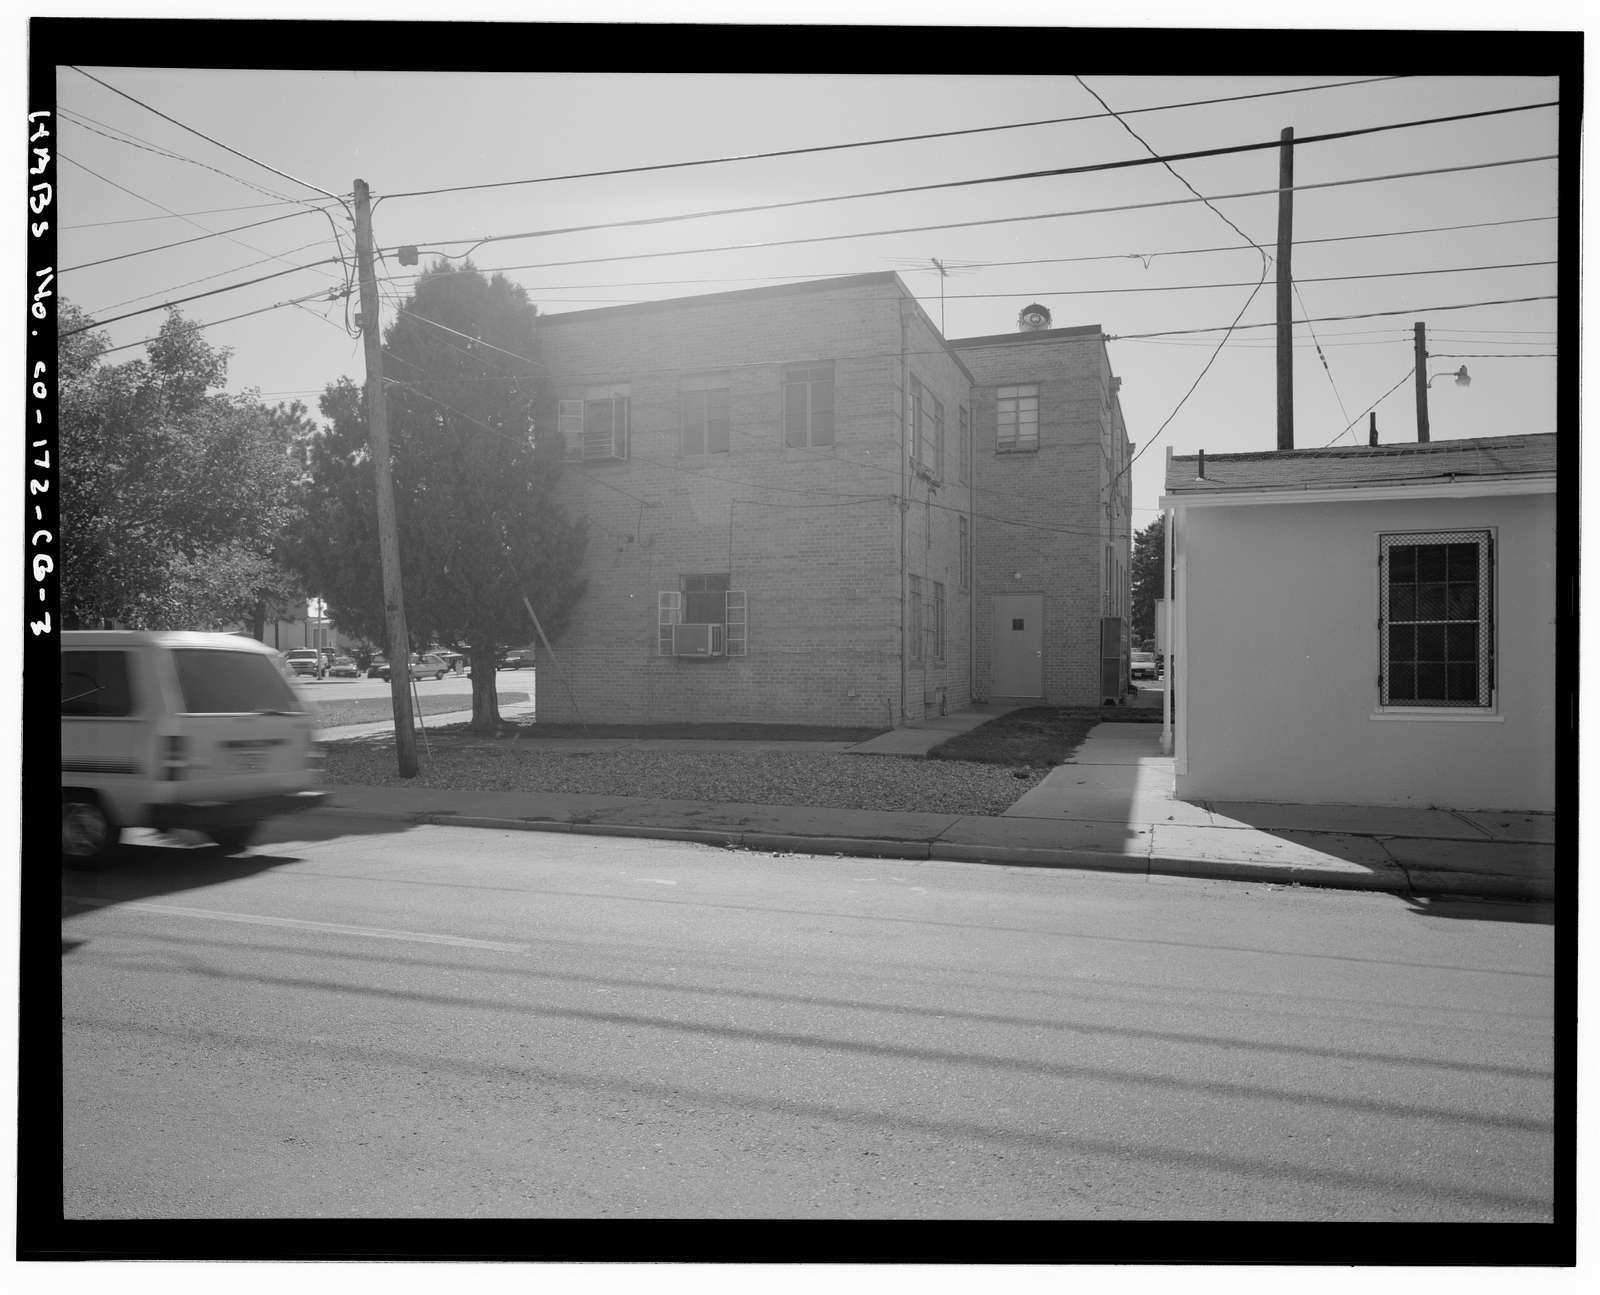 Fitzsimons General Hospital, Fire Station, Southwest Corner of East Harlow Avenue & South Page Street, Aurora, Adams County, CO